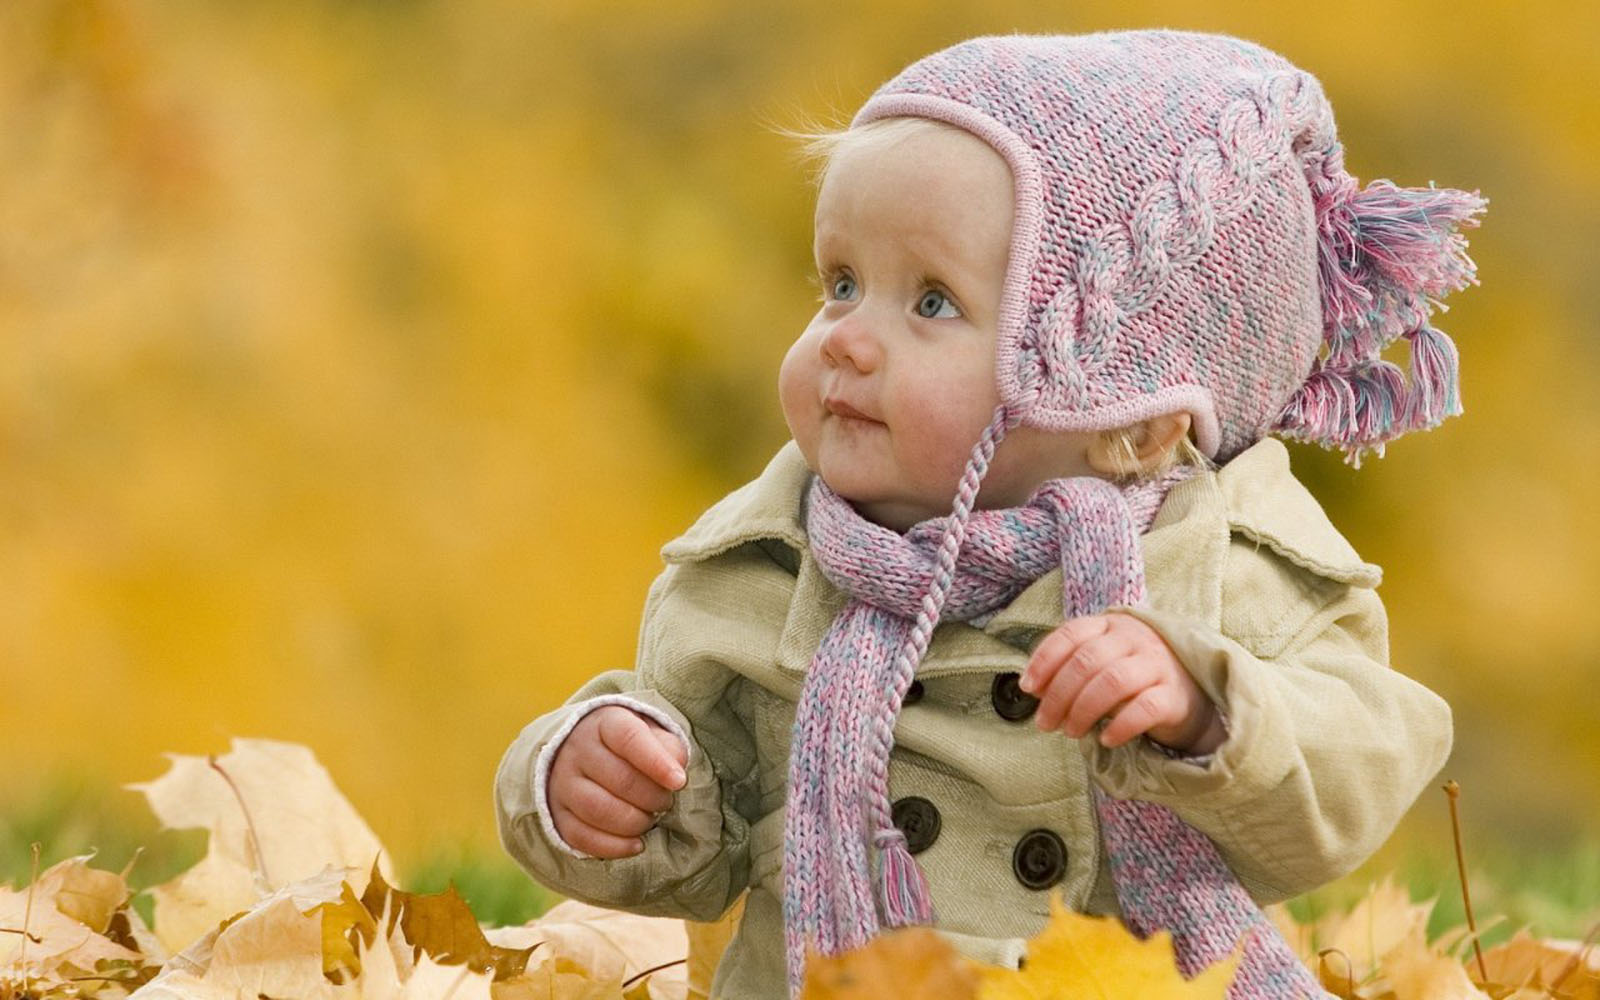 Cute Baby Boys Wallpapers Hd Pictures: Cute Baby HD Wallpapers